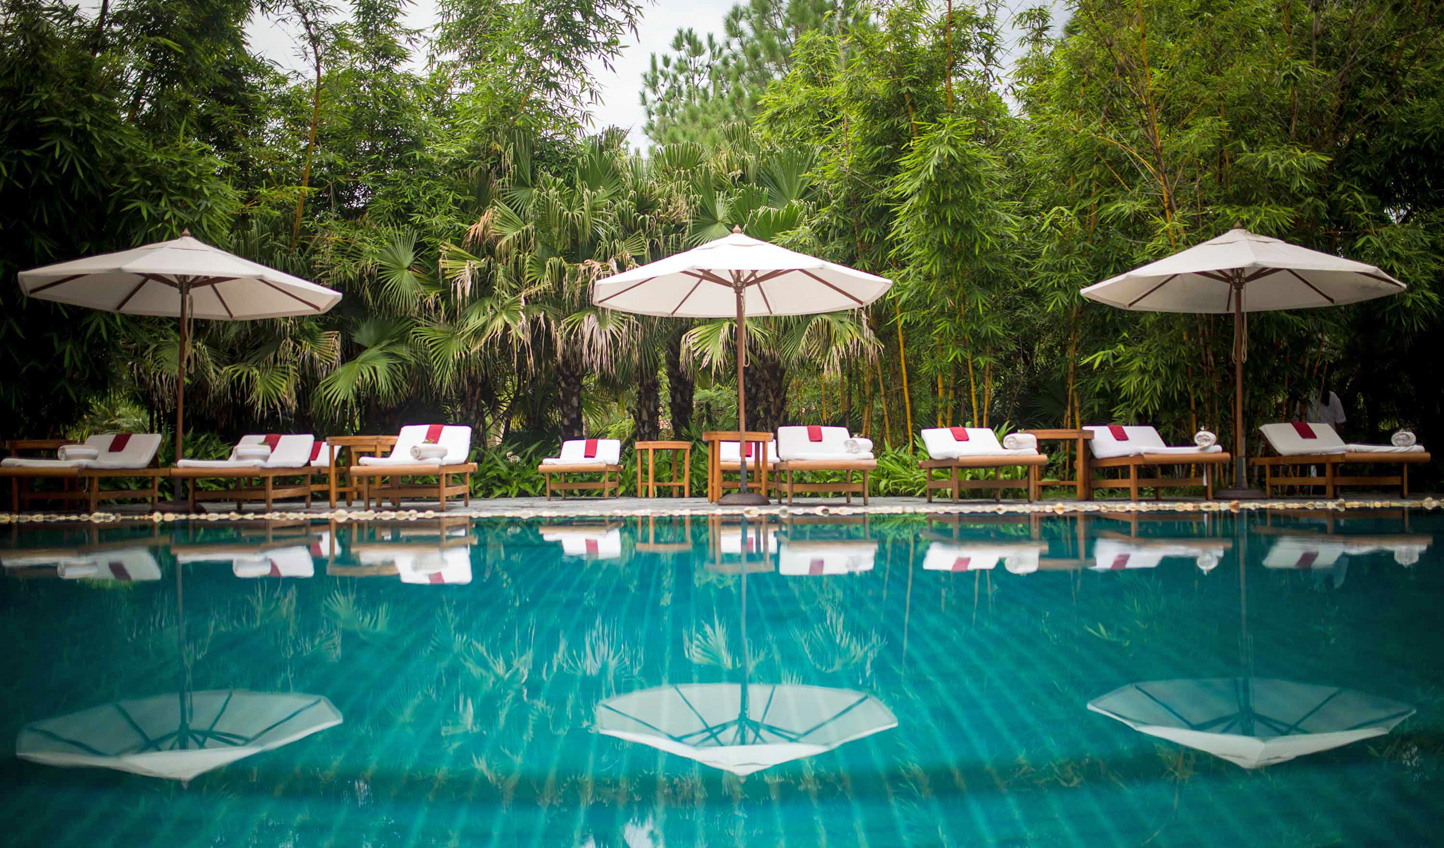 Relax by the pool at the Ananda